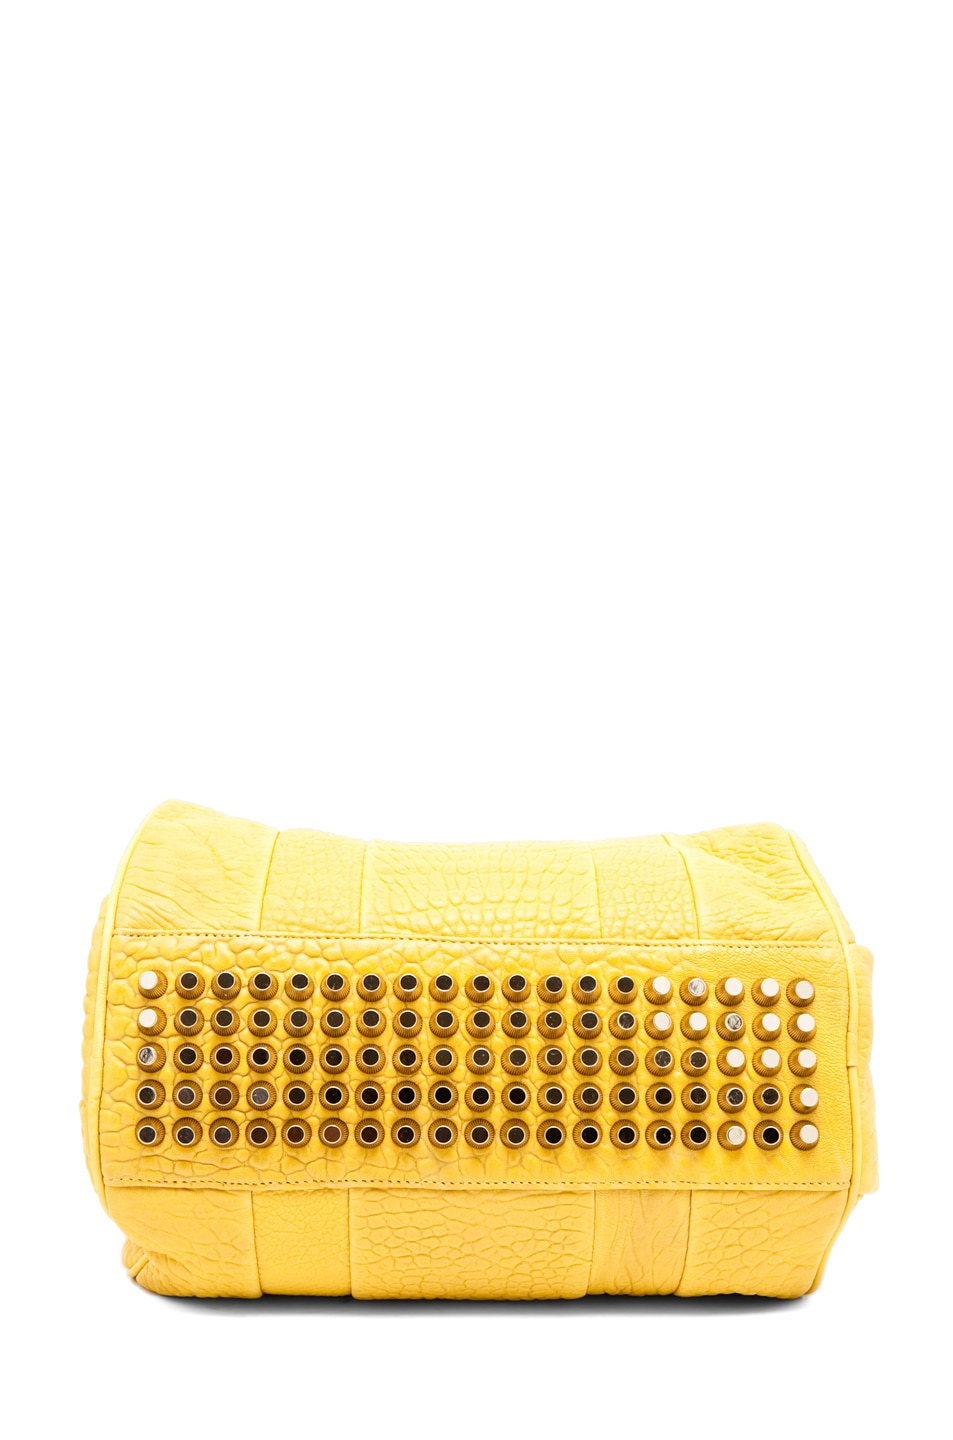 Image 2 of Alexander Wang Rocco Satchel in Citrus